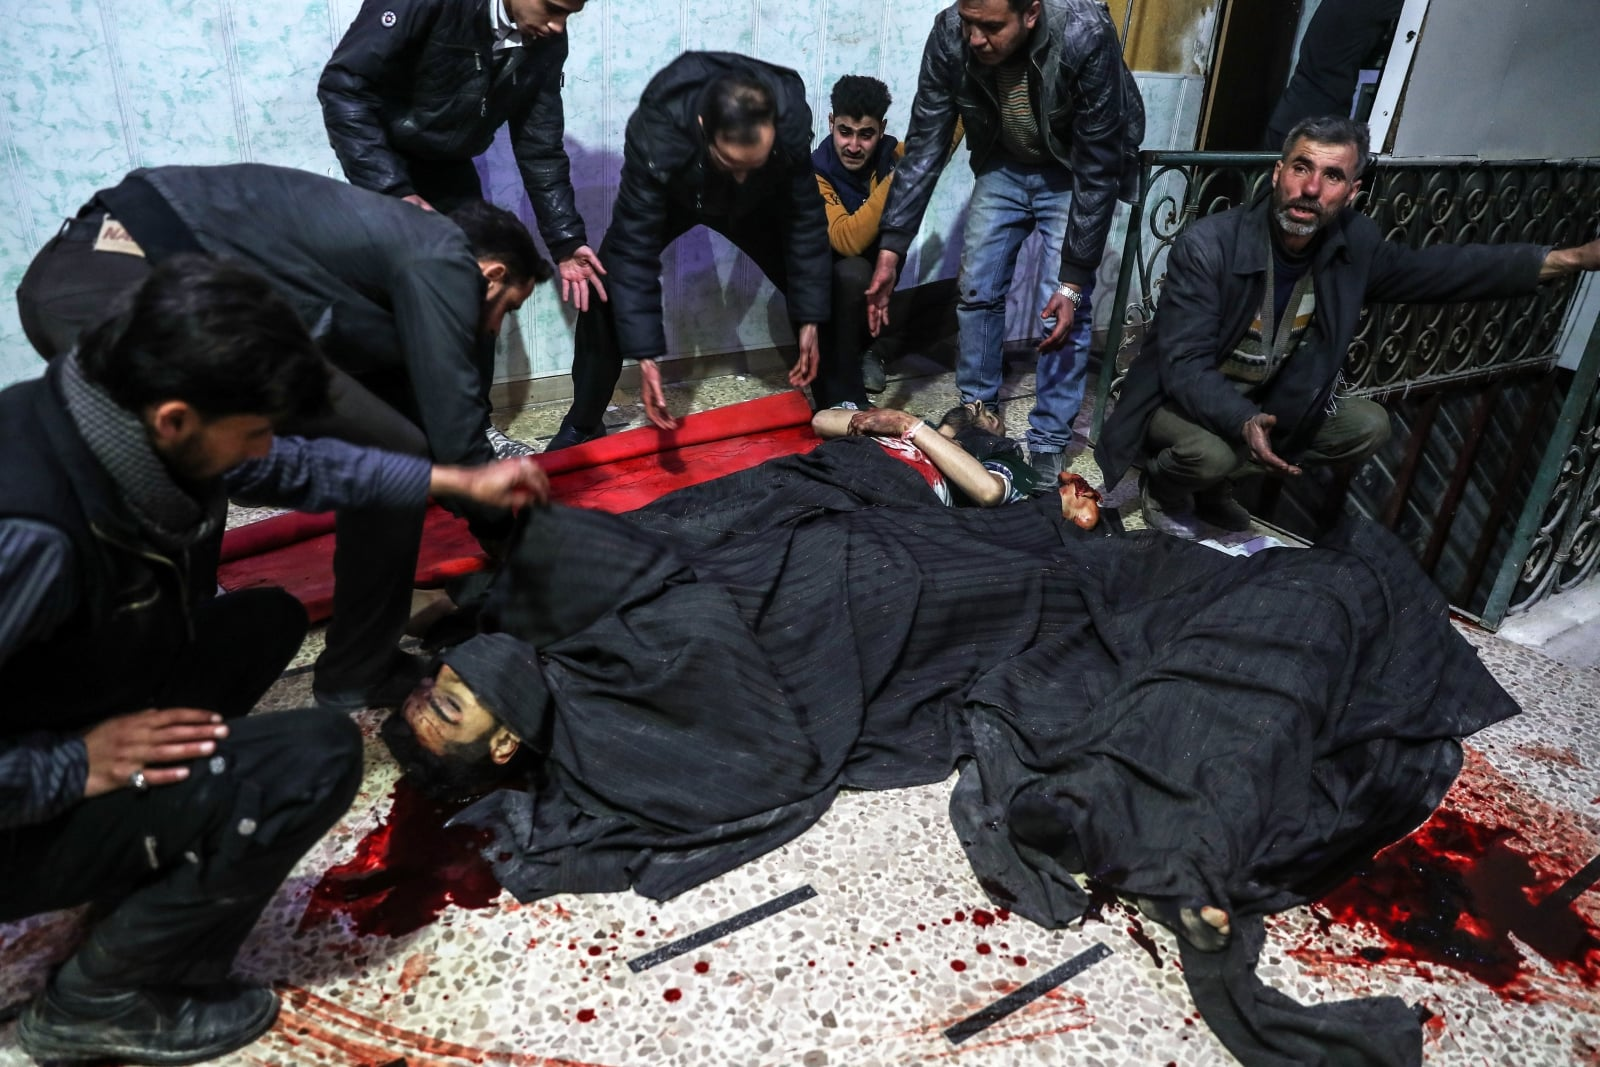 epa06503641 People react as they gather around bodies of people killed in bombings in Douma in a hospital in Douma, eastern Ghouta, Syria, 07 February 2018. More than 12 people were killed today after bombings carried out by forces loyal to Syrian goverment in Douma and more than 36 people were killed in the whole Eastern al-Ghouta cities.  EPA/MOHAMMED BADRA ATTENTION EDITORS: PICTURE CONTAINS GRAPHIC CONTENT Dostawca: PAP/EPA.